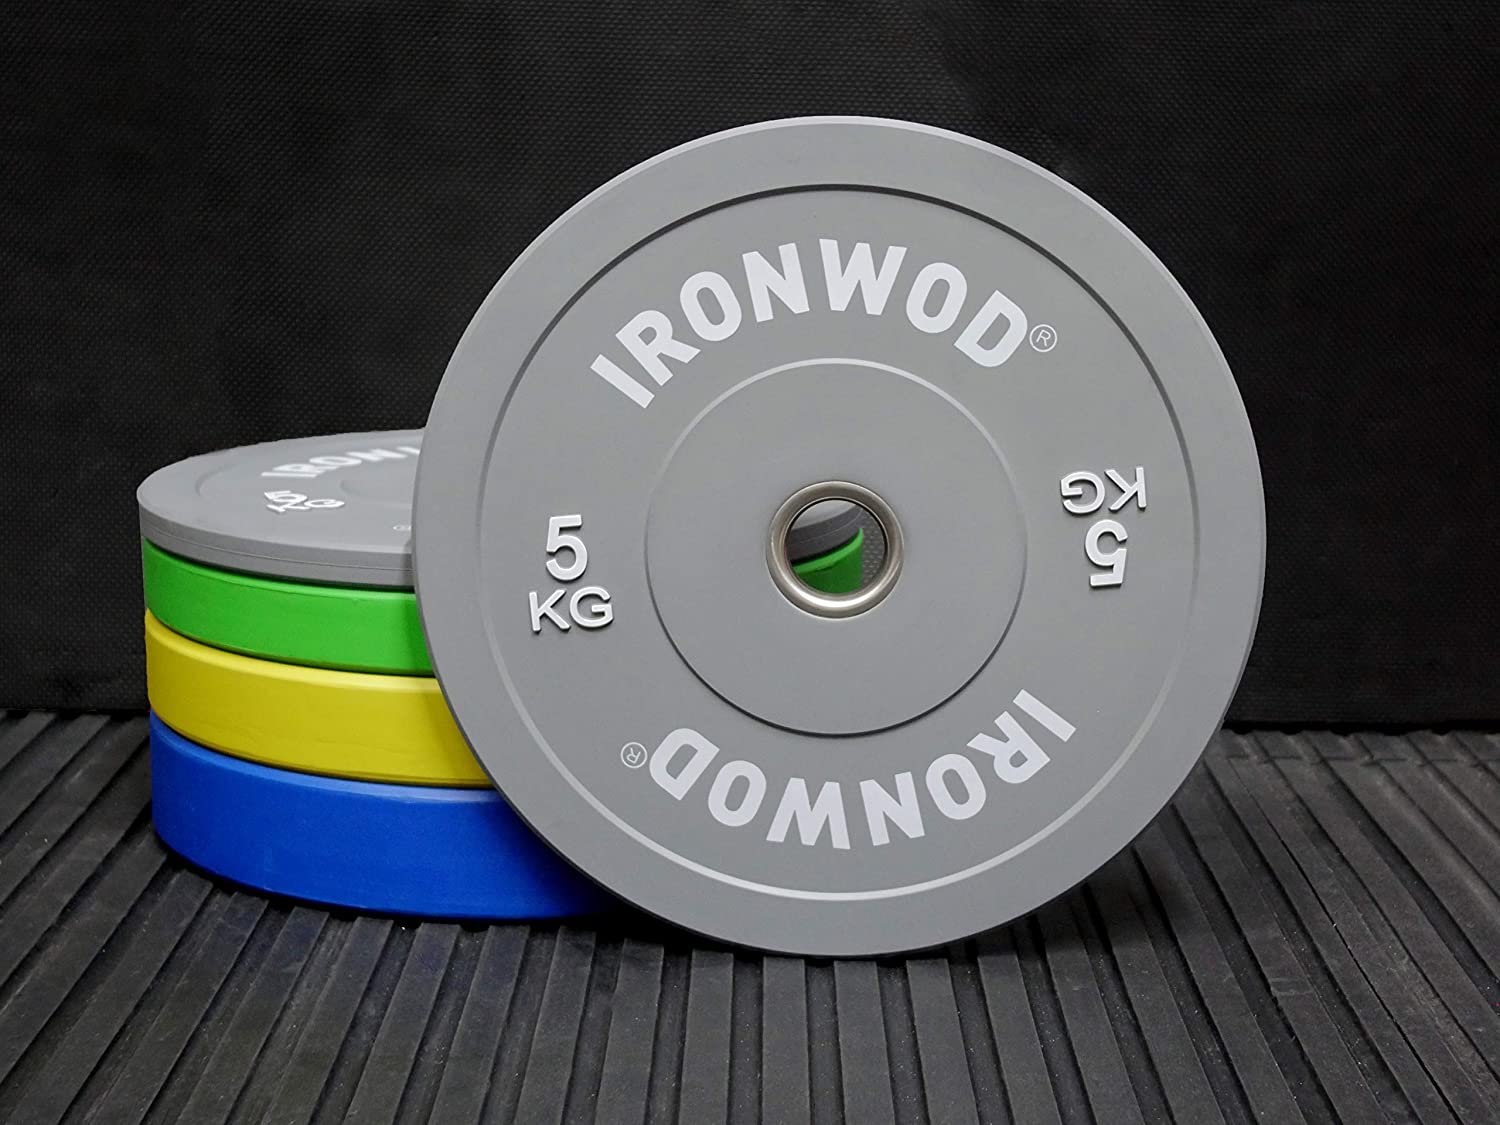 EXTREME FITNESS Ironwod Colour Rubber Bumper Weight Plates Olympic 2 Pairs